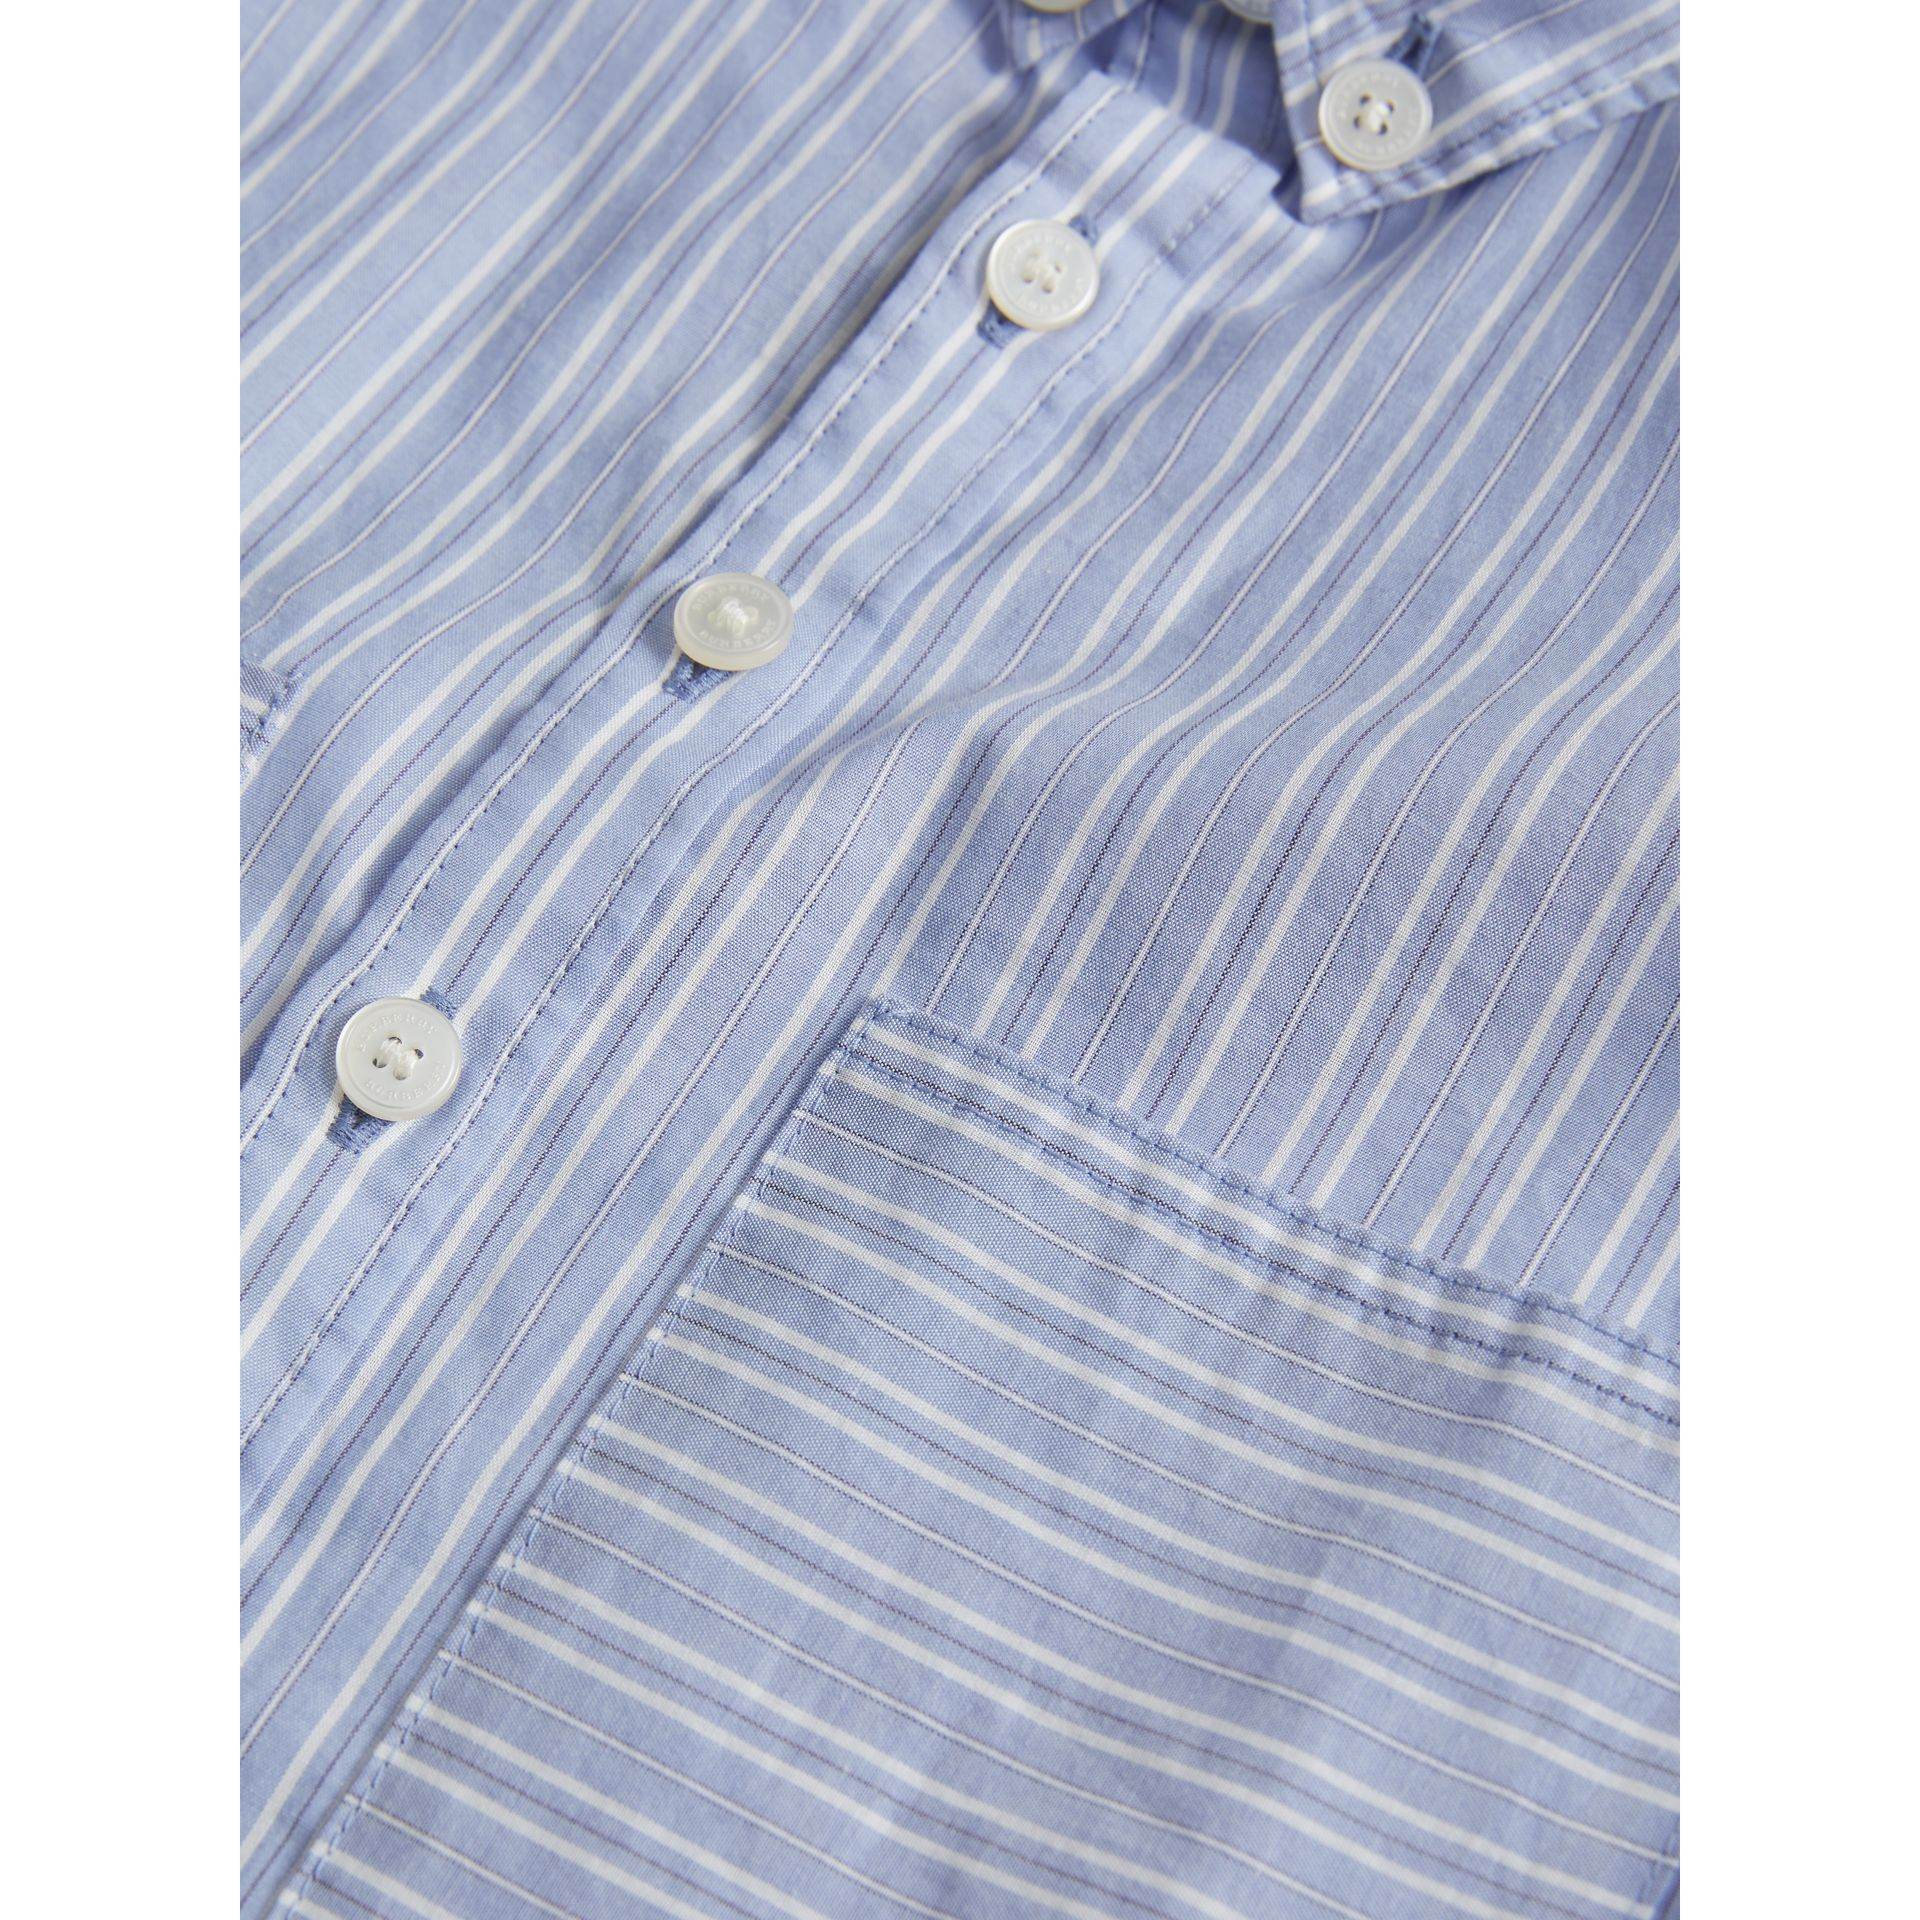 Directional Stripe Cotton Shirt in City Blue | Burberry - gallery image 1